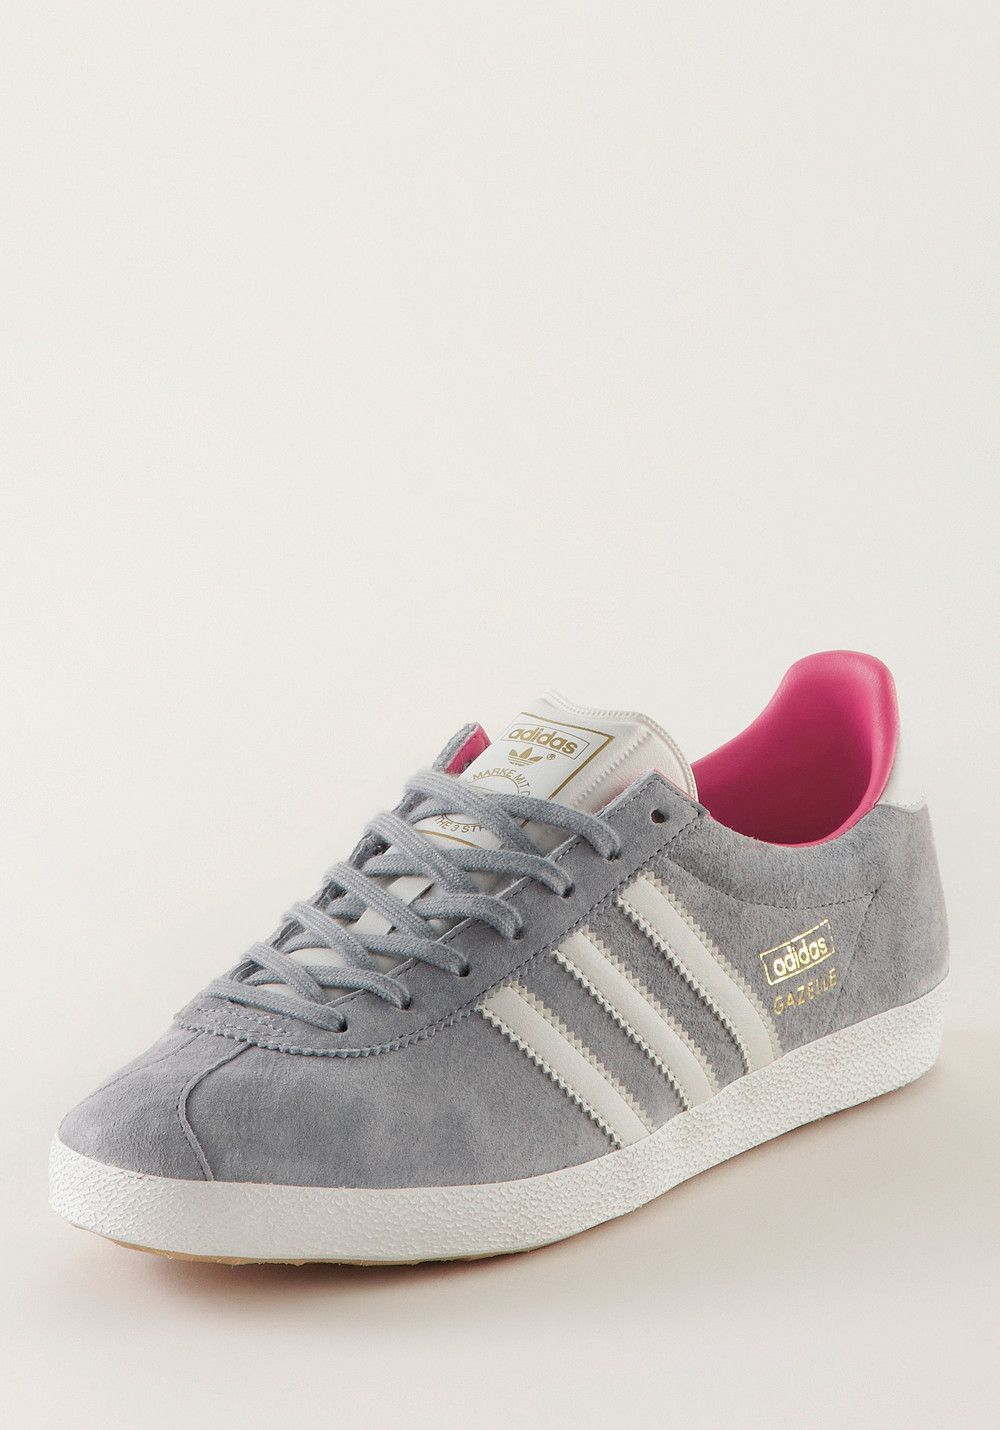 motivo Decorativo unir  ADIDAS Gazelle OG Suede grey-pink-white, Fashion Sneaker | Adidas gazelle,  Sneakers fashion, Adidas shoes outlet